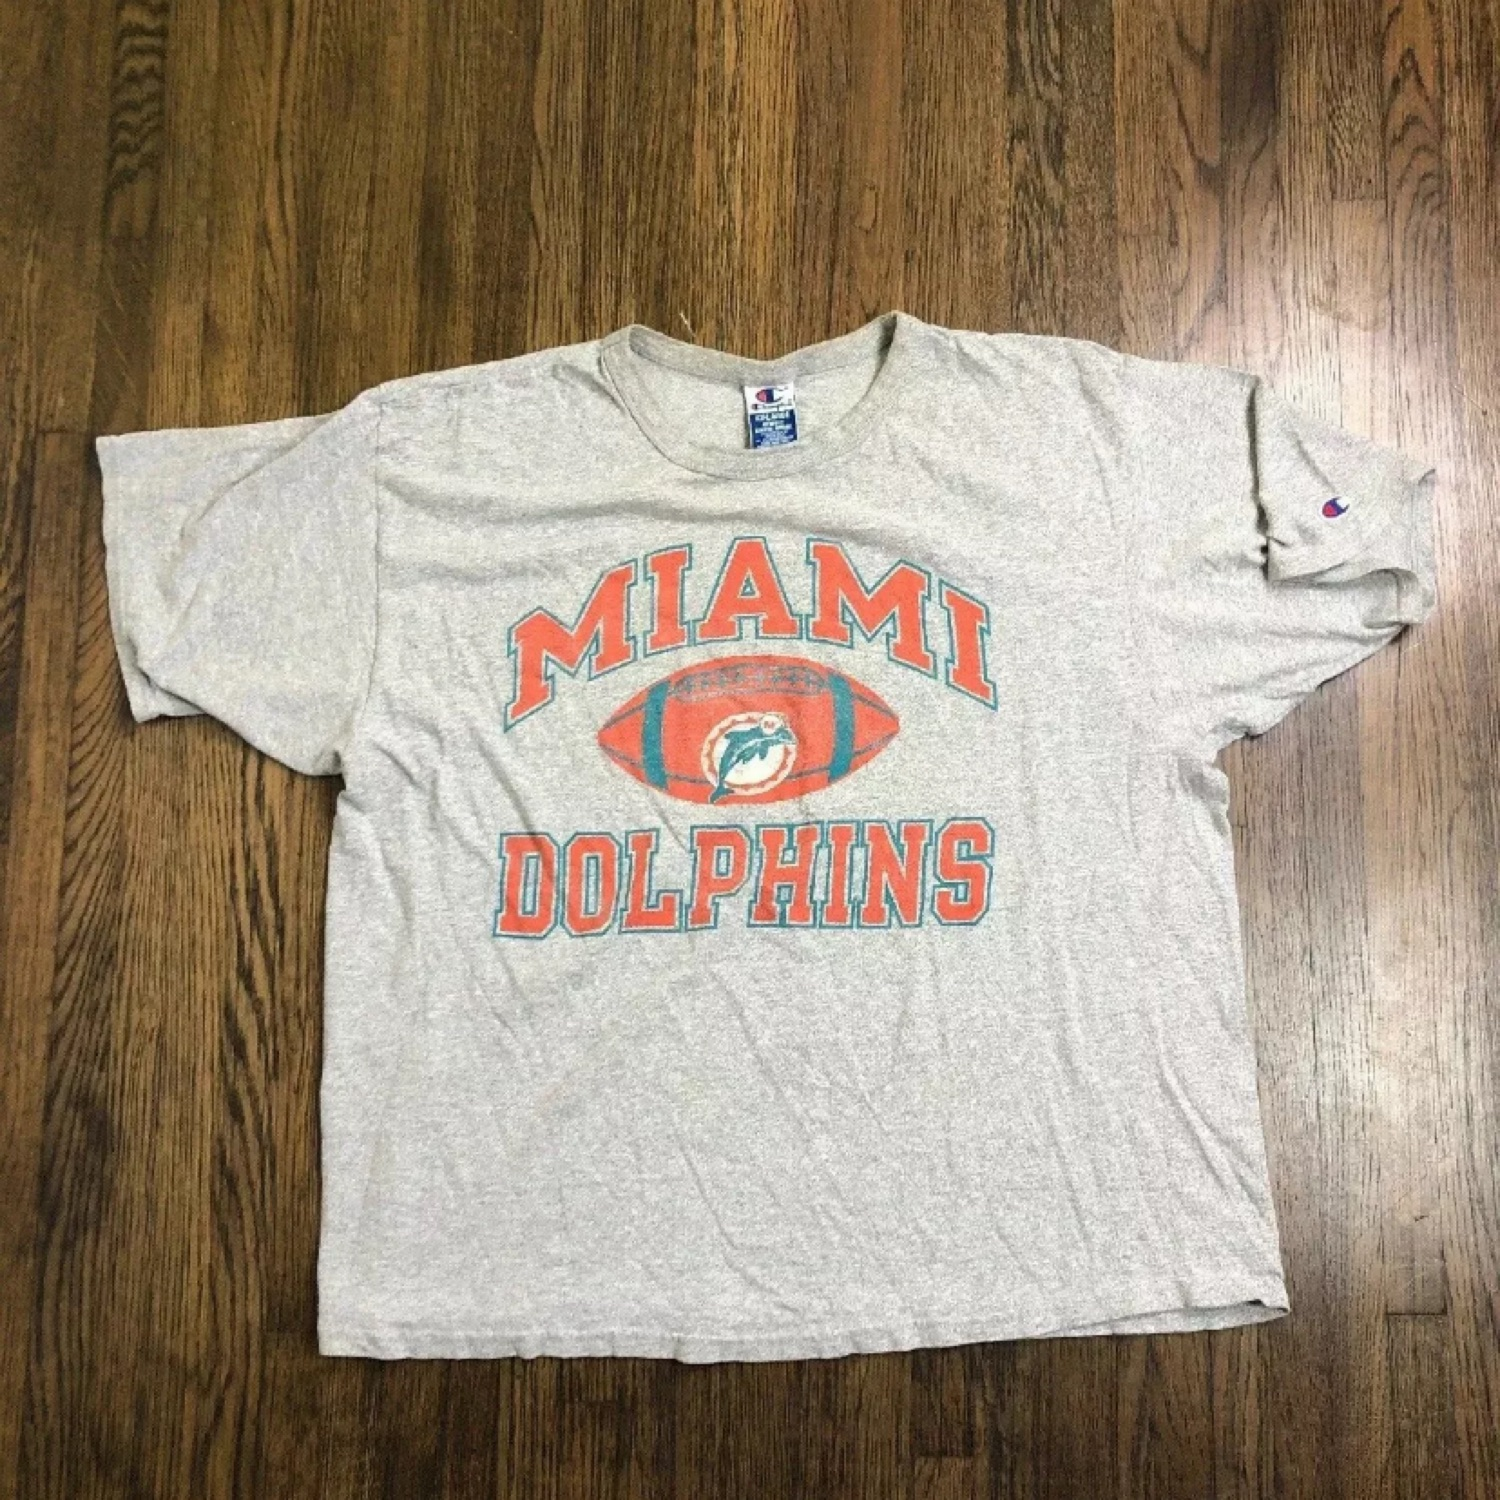 buy online 55c62 f1391 Vintage Miami Dolphins Shirt